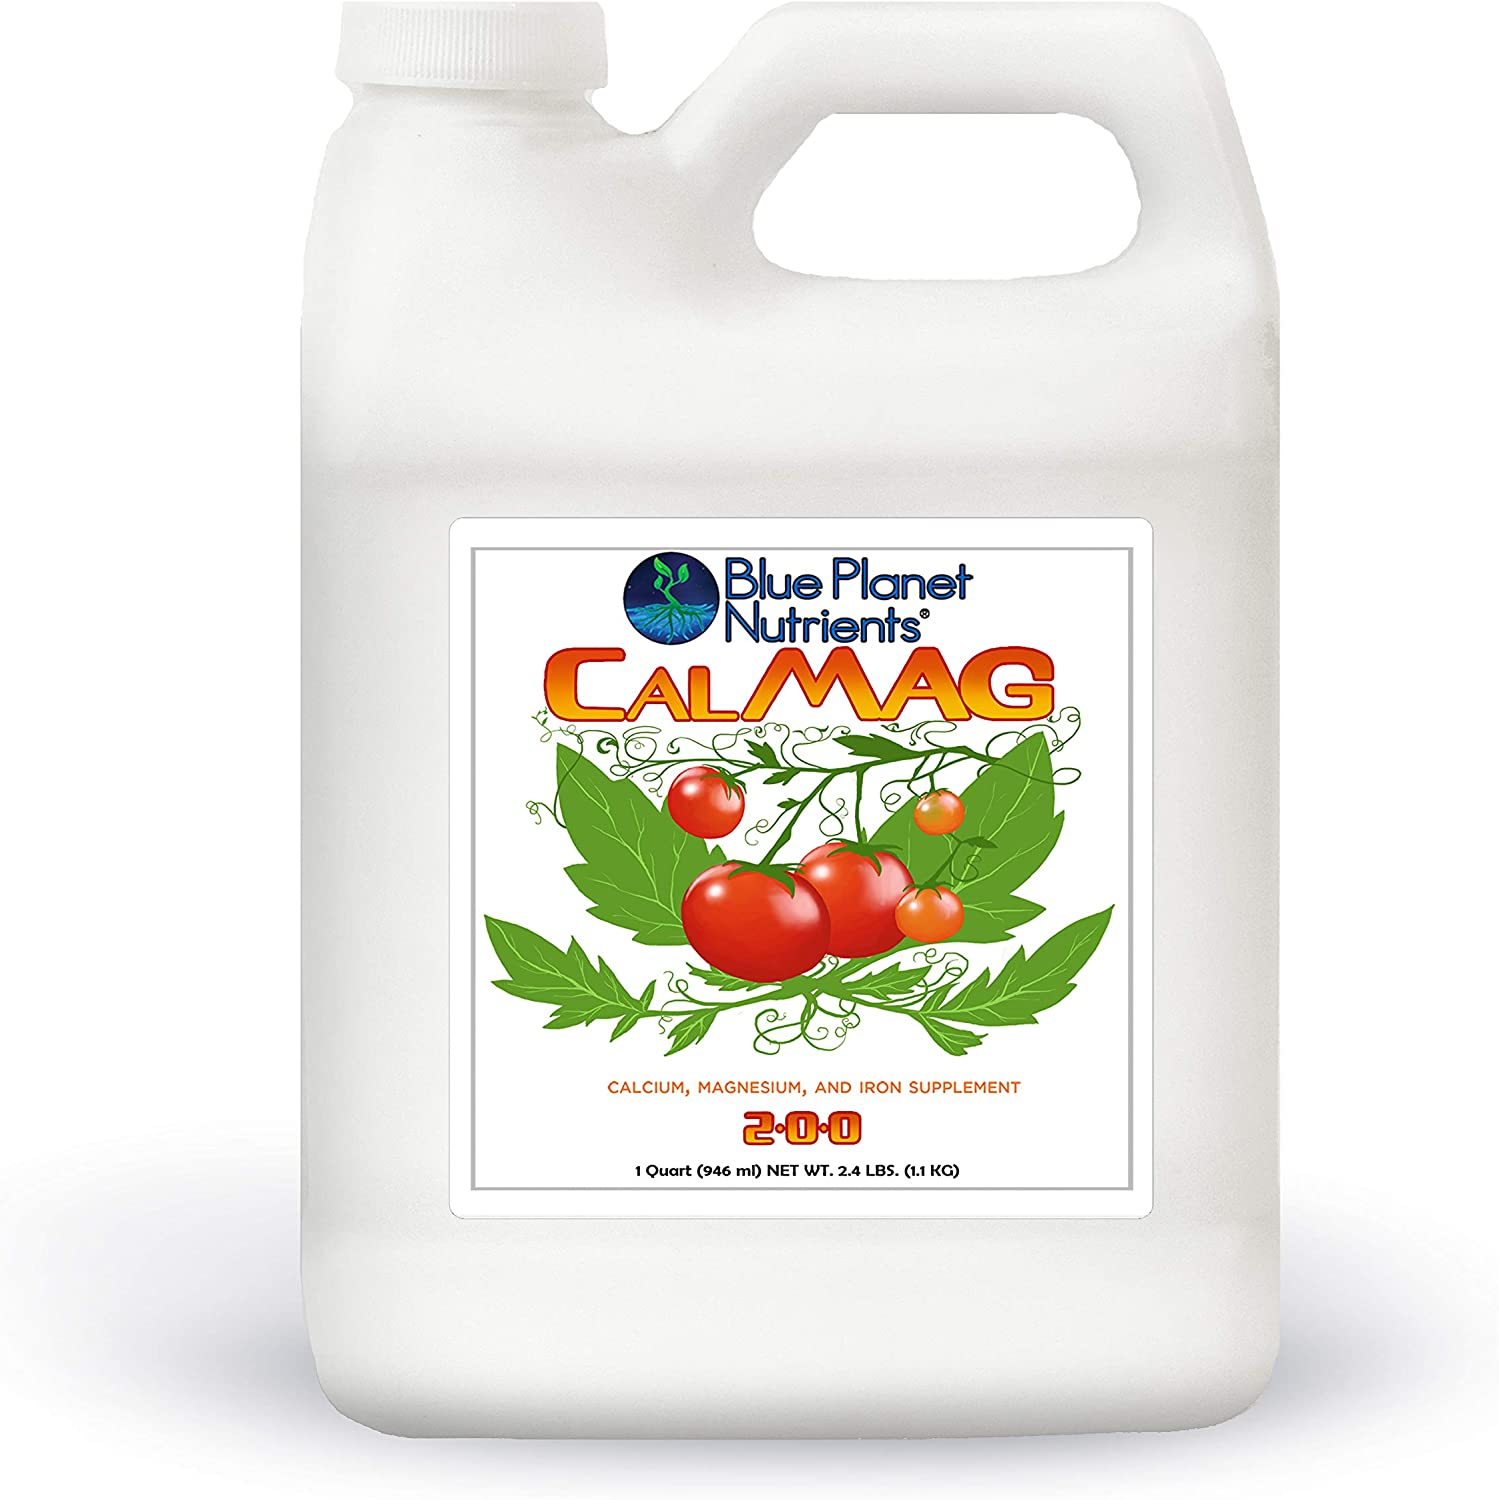 Blue Planet Nutrients CalMag with Iron Liquid Supplement Quart (32 oz) | Cal Mag for All Plants & Gardens | Grow Vegetables Herbs Fruits Flowers Buds | Prevents & Corrects Blossom End Rot